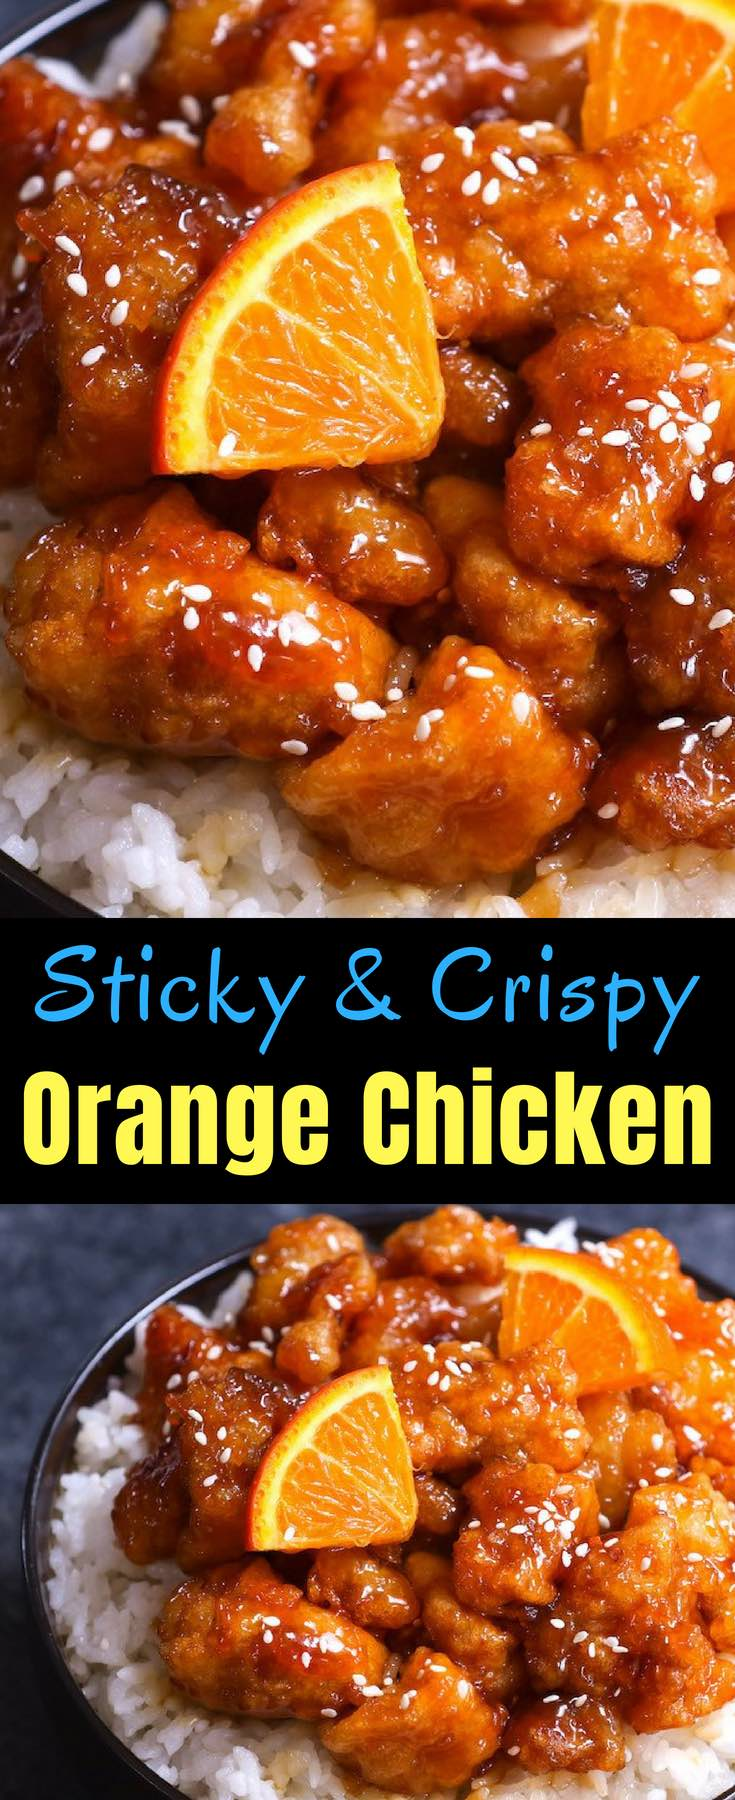 This Orange Chicken has crispy chunks of tender chicken covered in a tangy orange sauce. It makes a delicious weeknight dinner that's budget friendly and kid approved. So skip the takeout from Panda Express and try this orange chicken recipe!